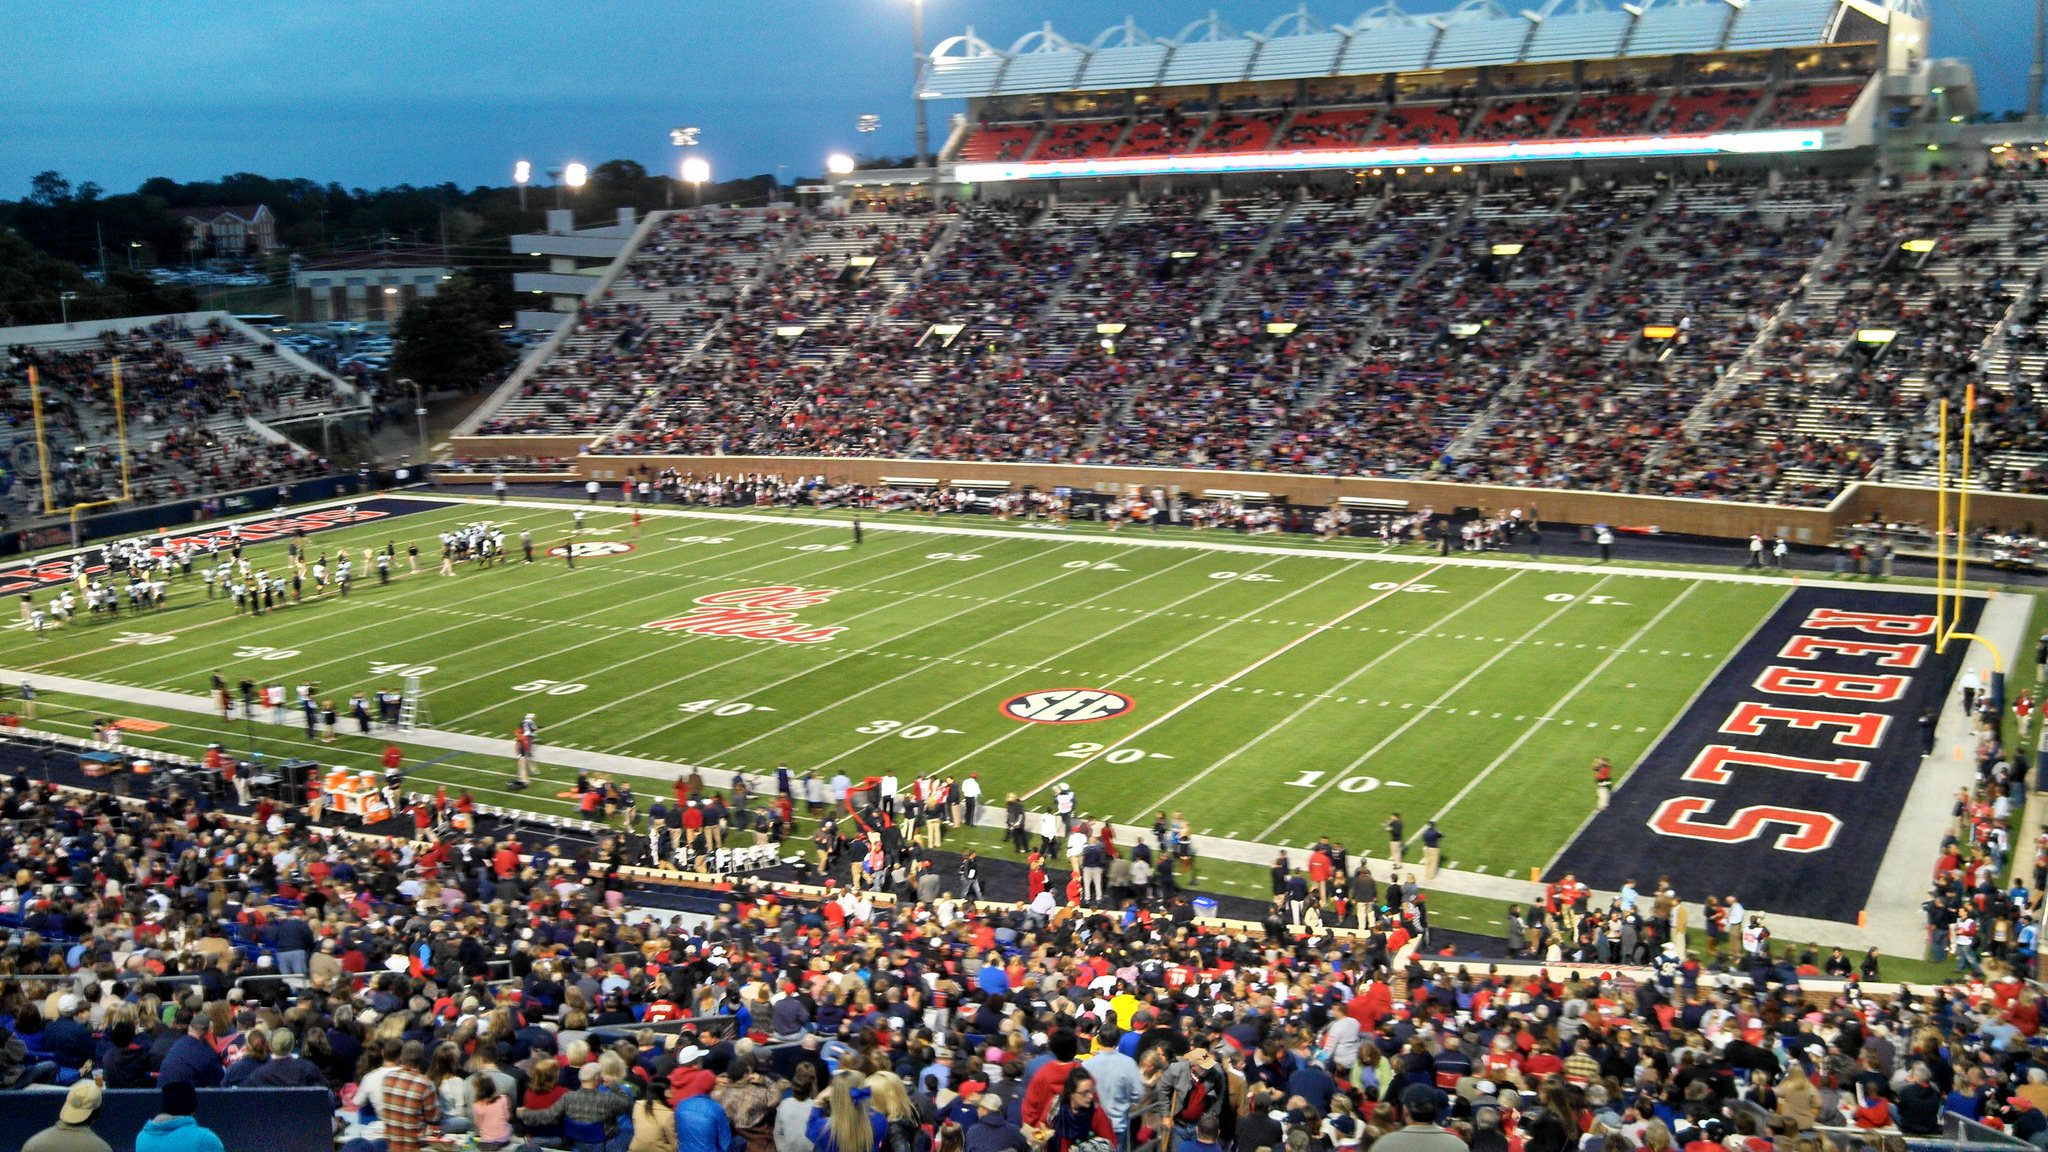 Vaught Hemingway Stadium, home of the Ole Miss Rebels